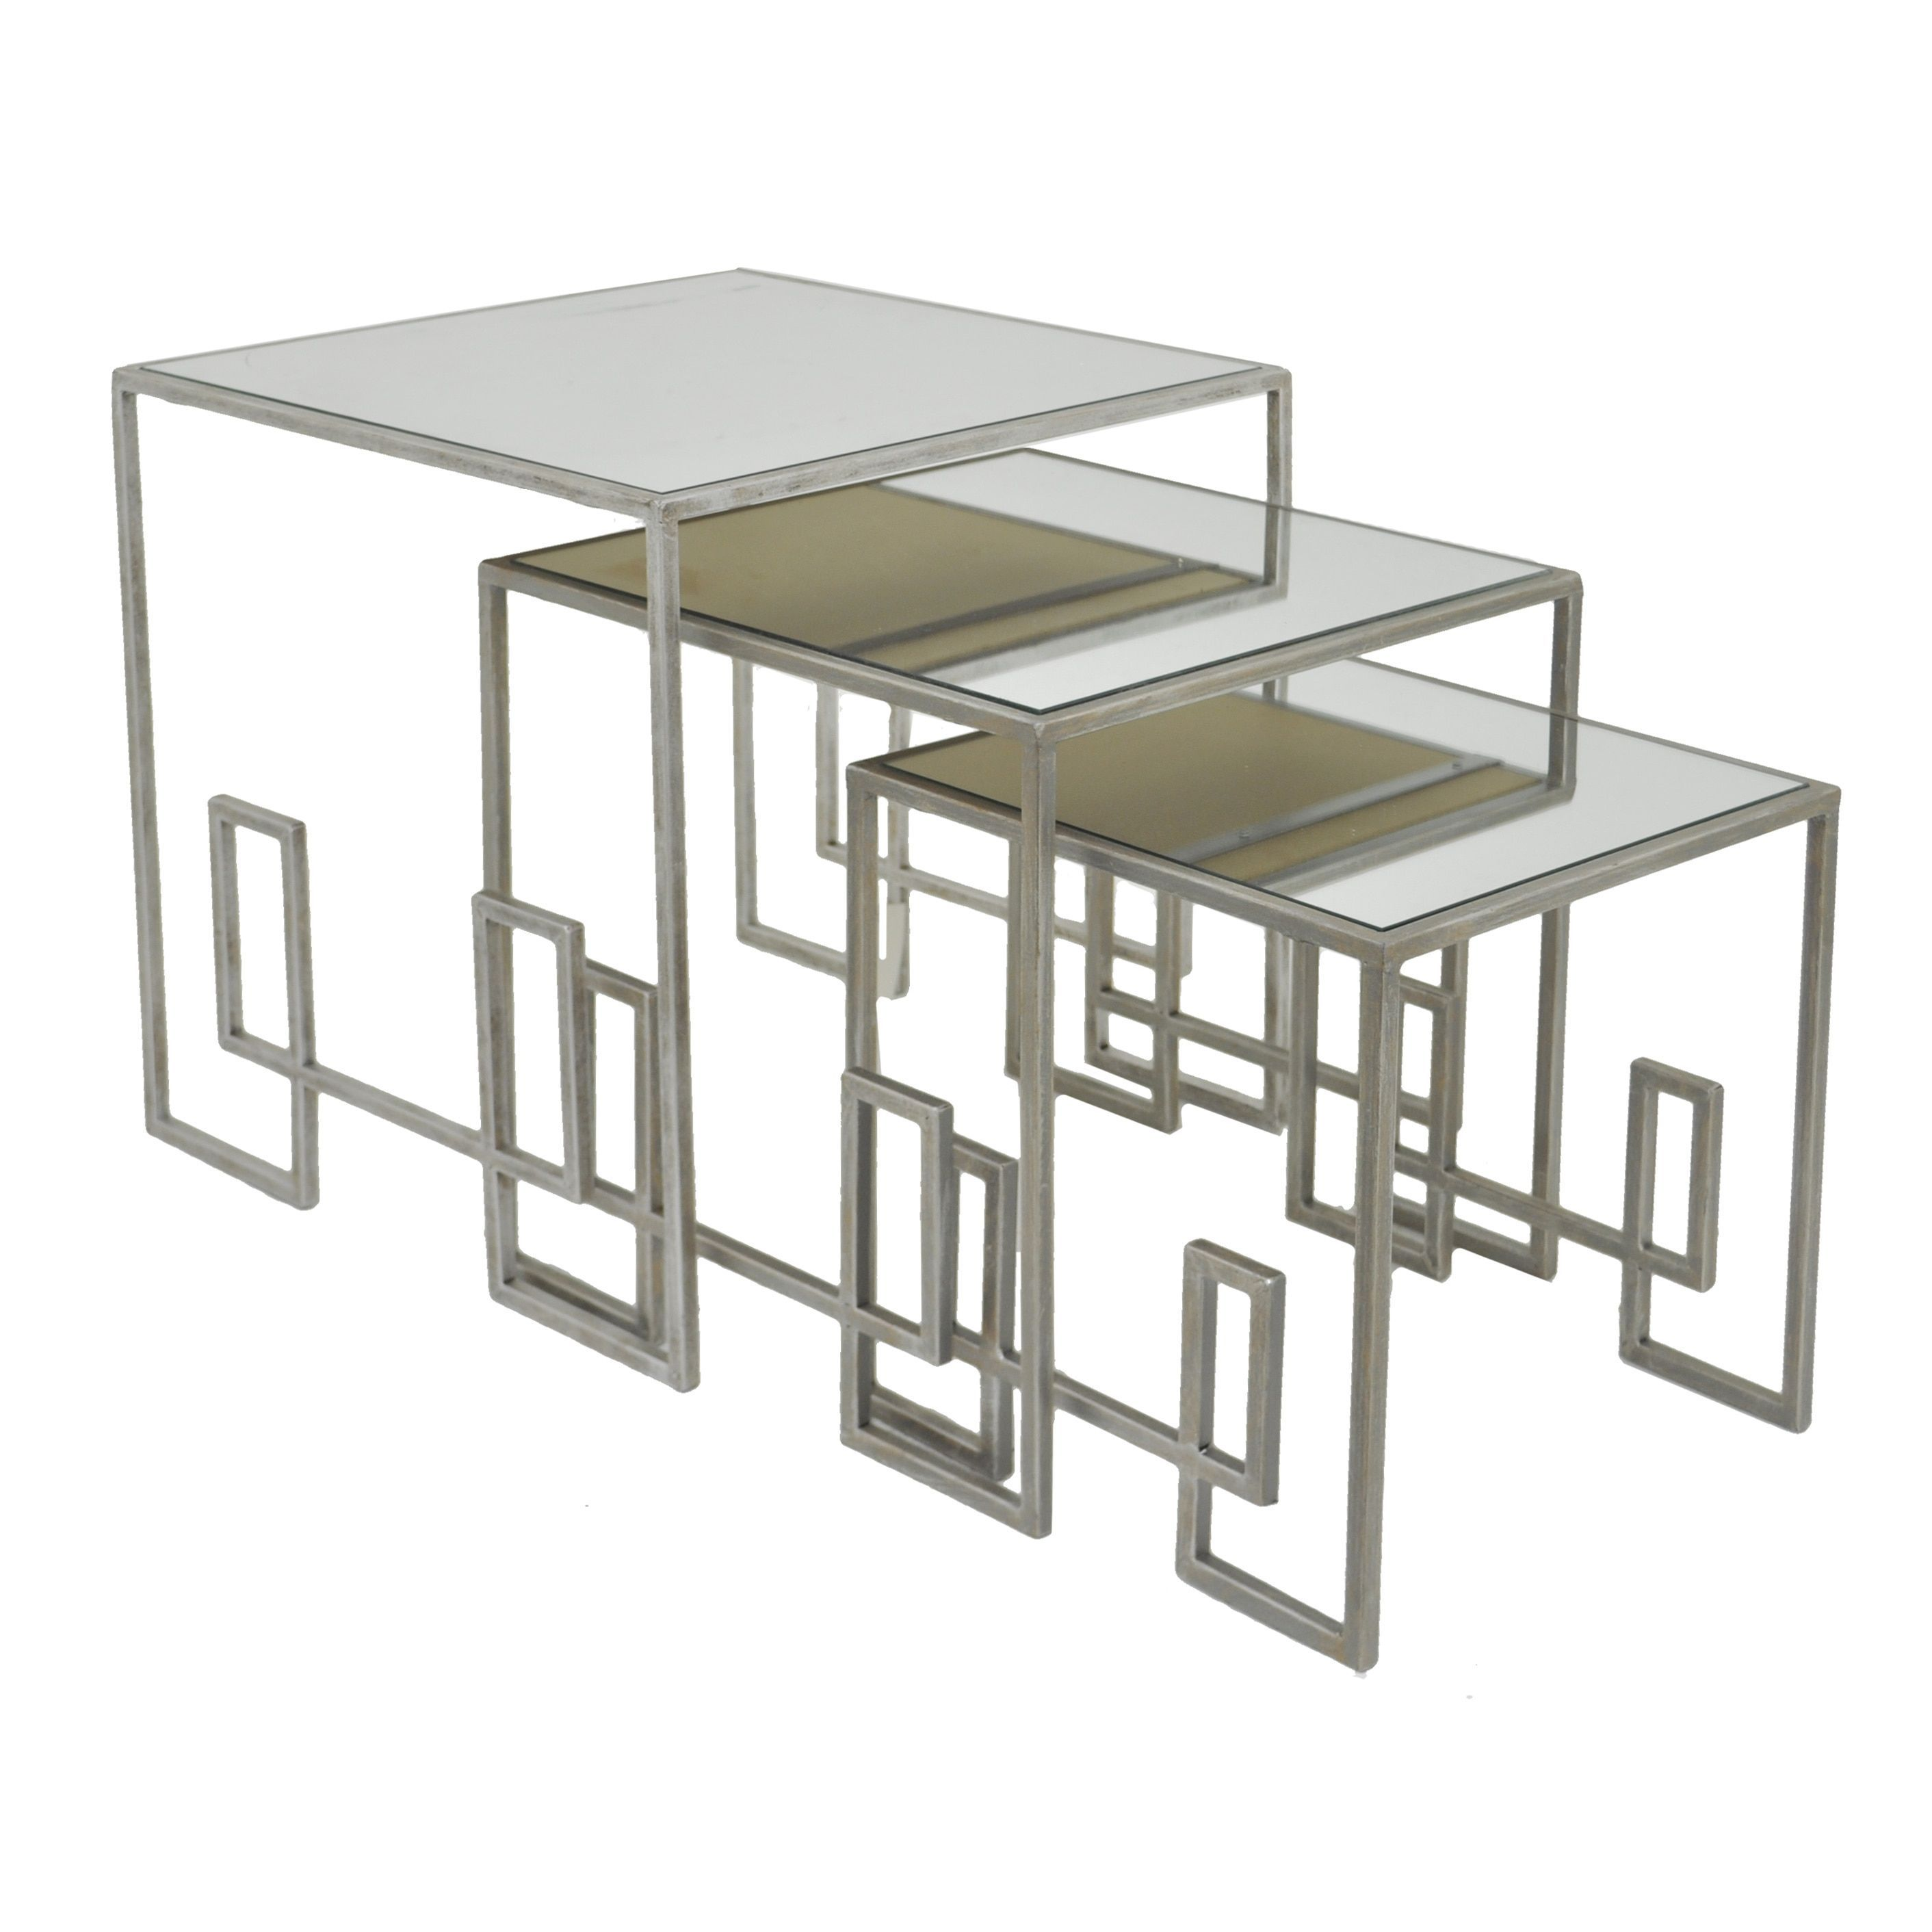 Three Hands Silver Gold Mirror Table Set of 3 Silver